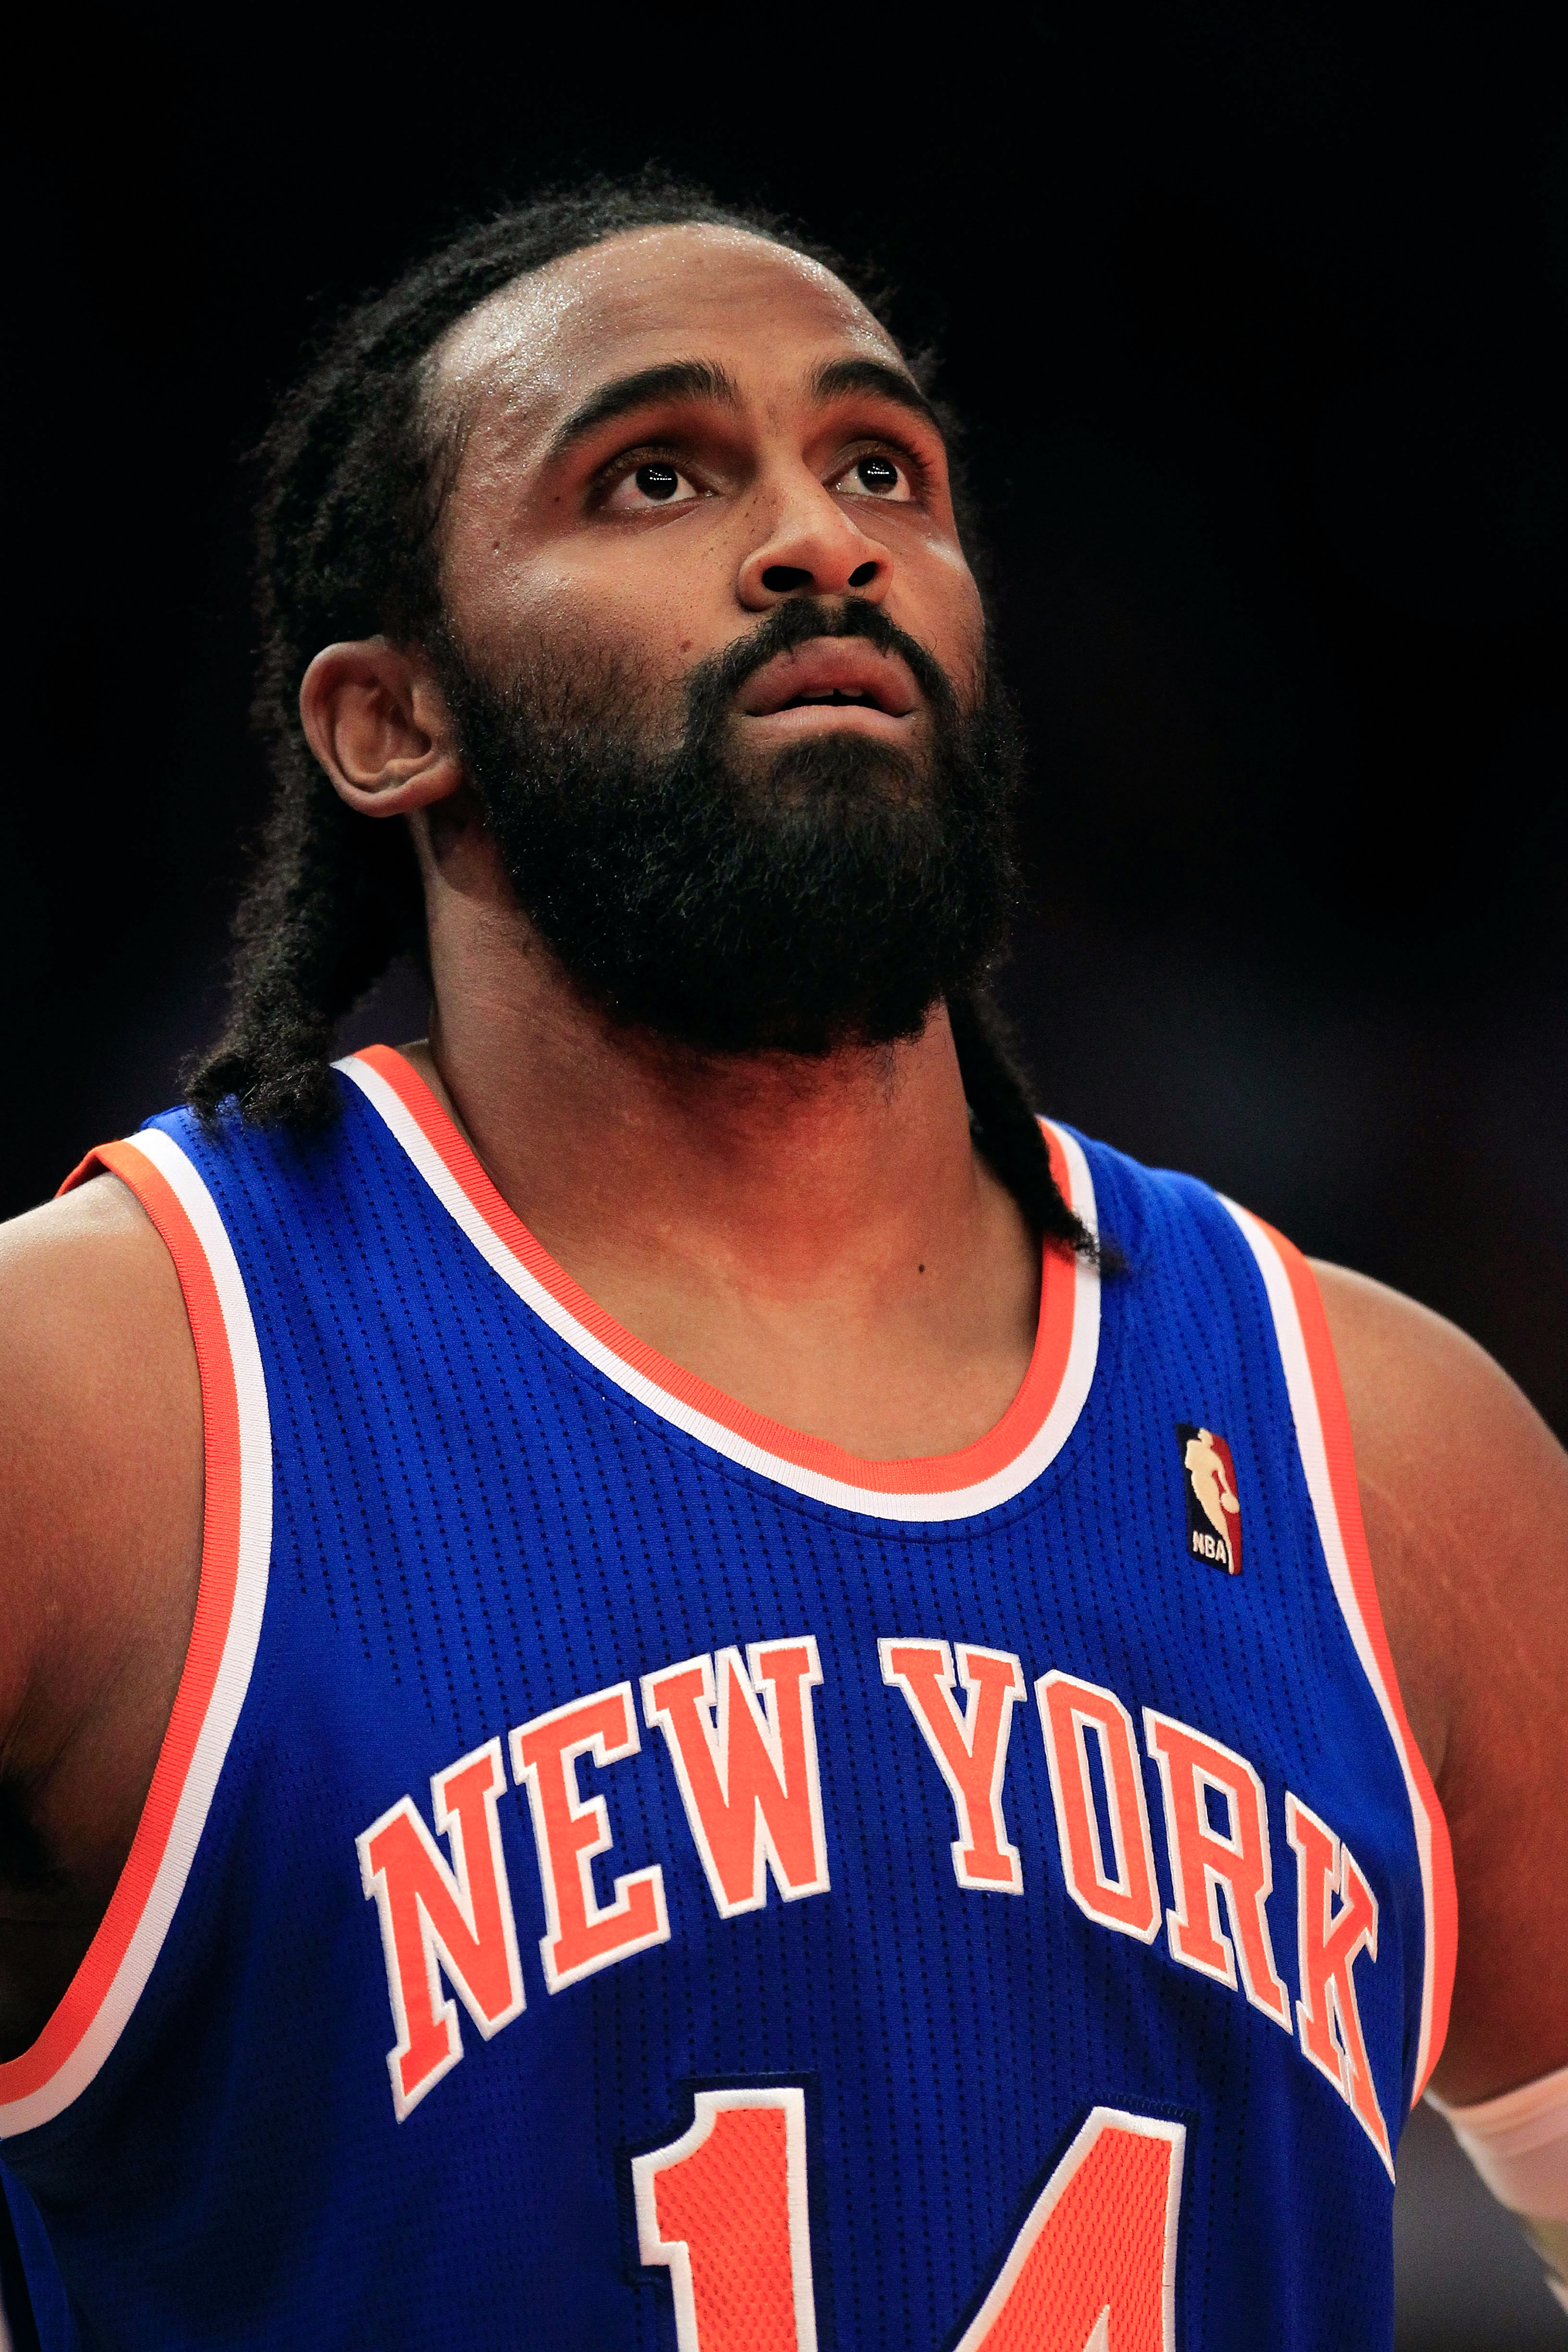 NEW YORK, NY - FEBRUARY 23:  Ronny Turiaf #14 of the New York Knicks on the court against the Milwaukee Bucks at Madison Square Garden on February 23, 2011 in New York City. NOTE TO USER: User expressly acknowledges and agrees that, by downloading and/or